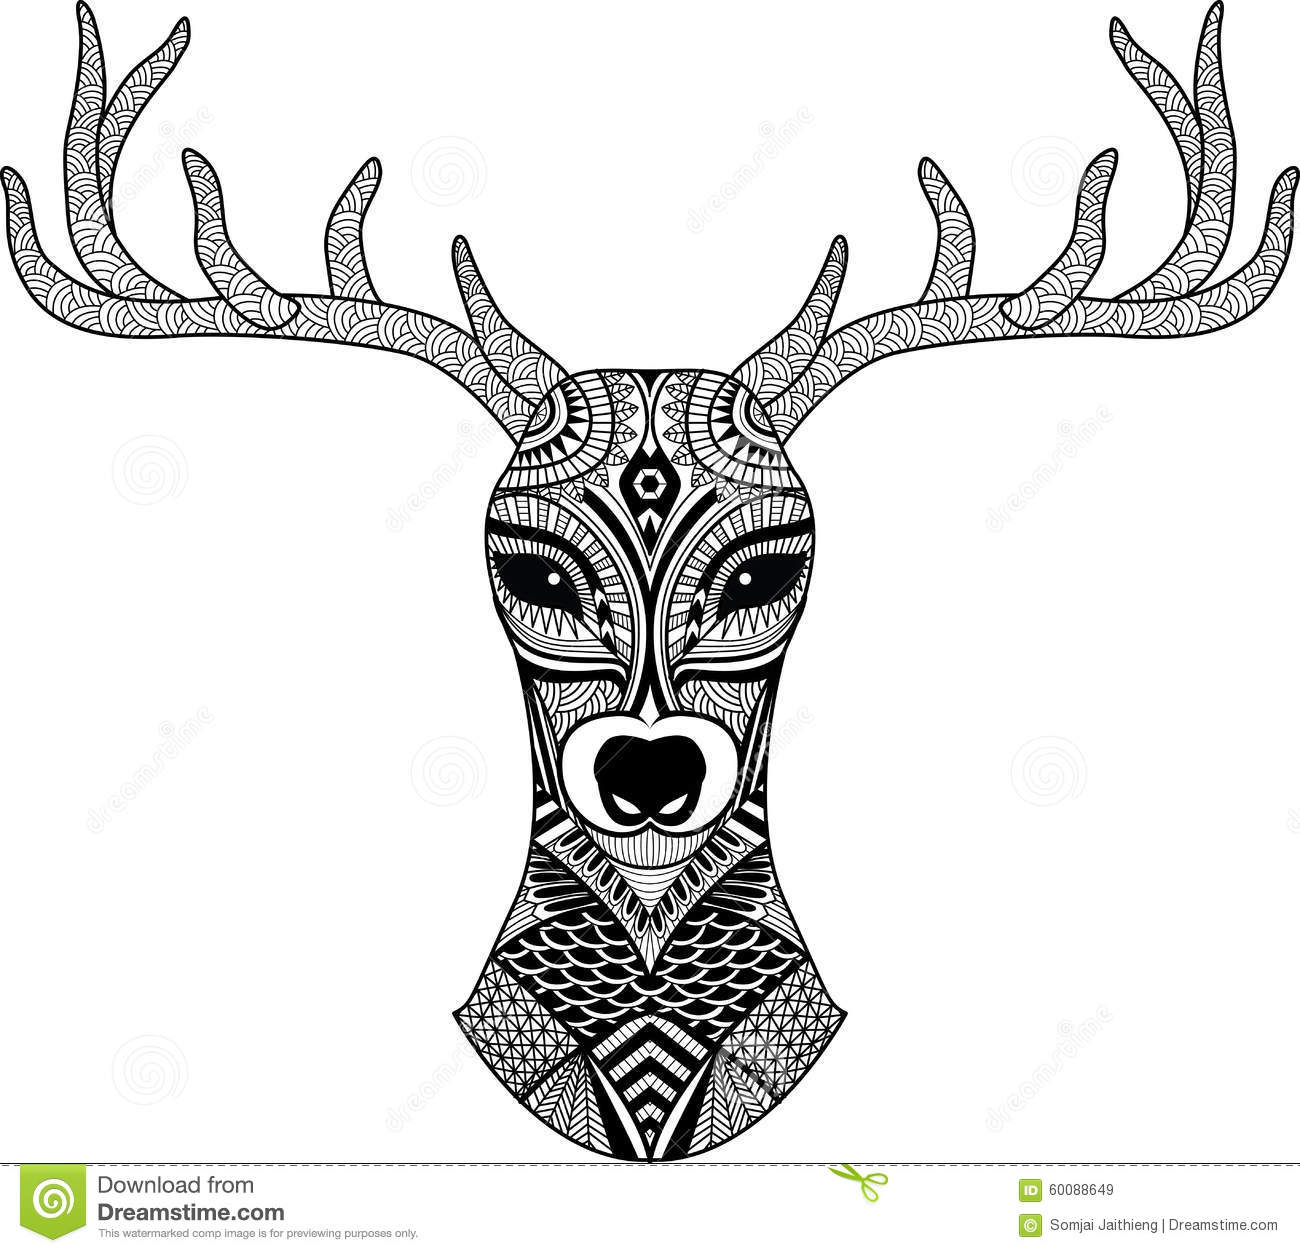 E5 8F A4 E9 A3 8E E7 B4 A0 E6 8F 8F as well Horns And Antlers In Brief 348872232 together with Downloads besides Animal Drawing Download likewise 1947043443434693148. on deer head sketch